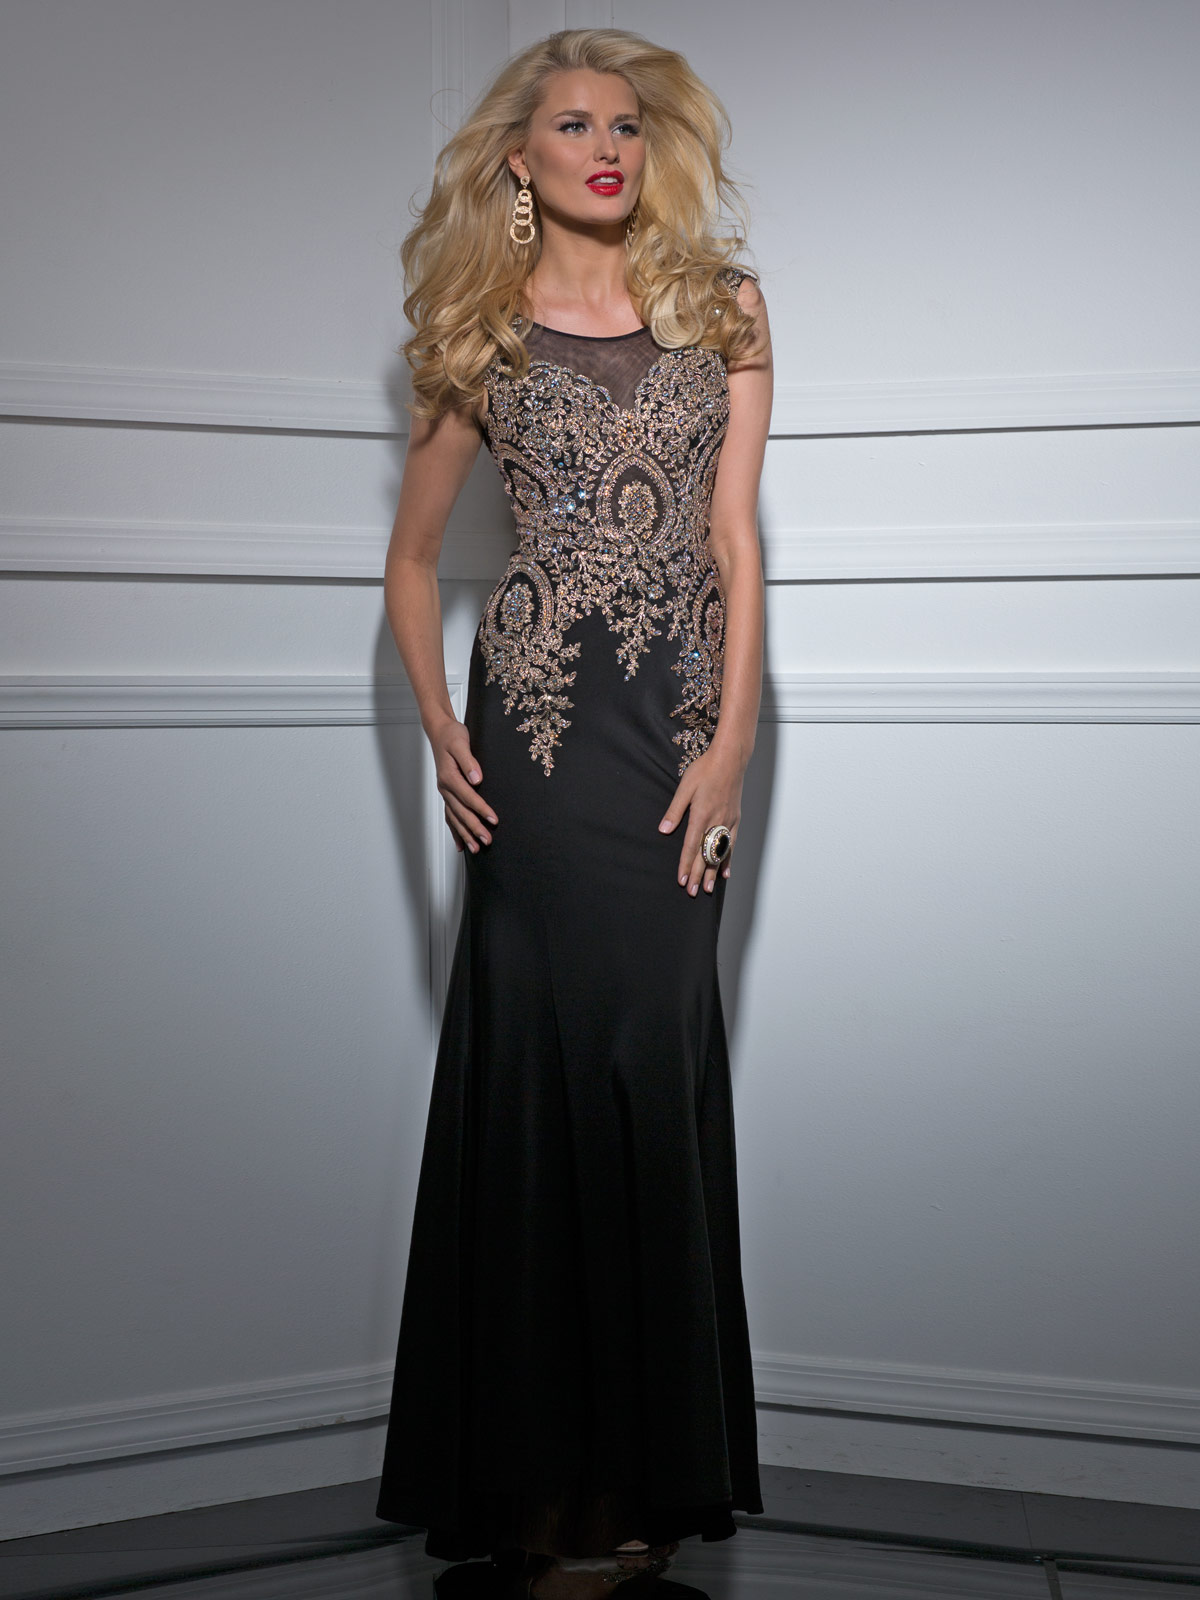 Clarisse Long Formal Prom Dress 4507 | Promgirl.net